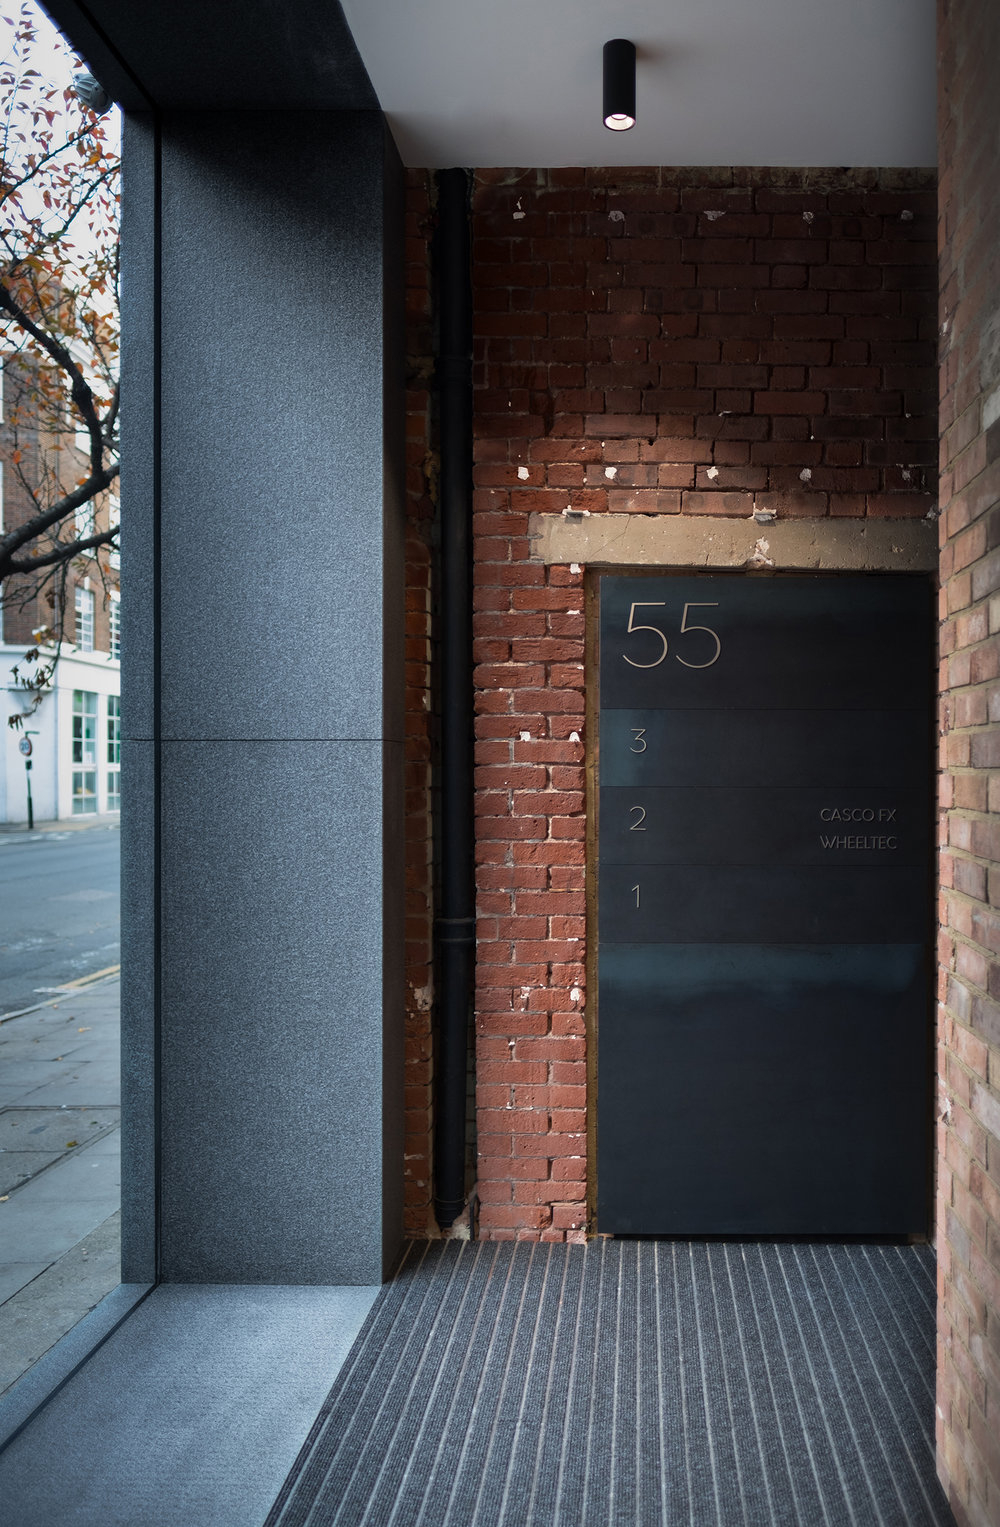 Goswell-Road-Clerkenwell-London-Office-Lobby-Entrance-Exposed-Brick-Metal-Signage-Interior.jpg